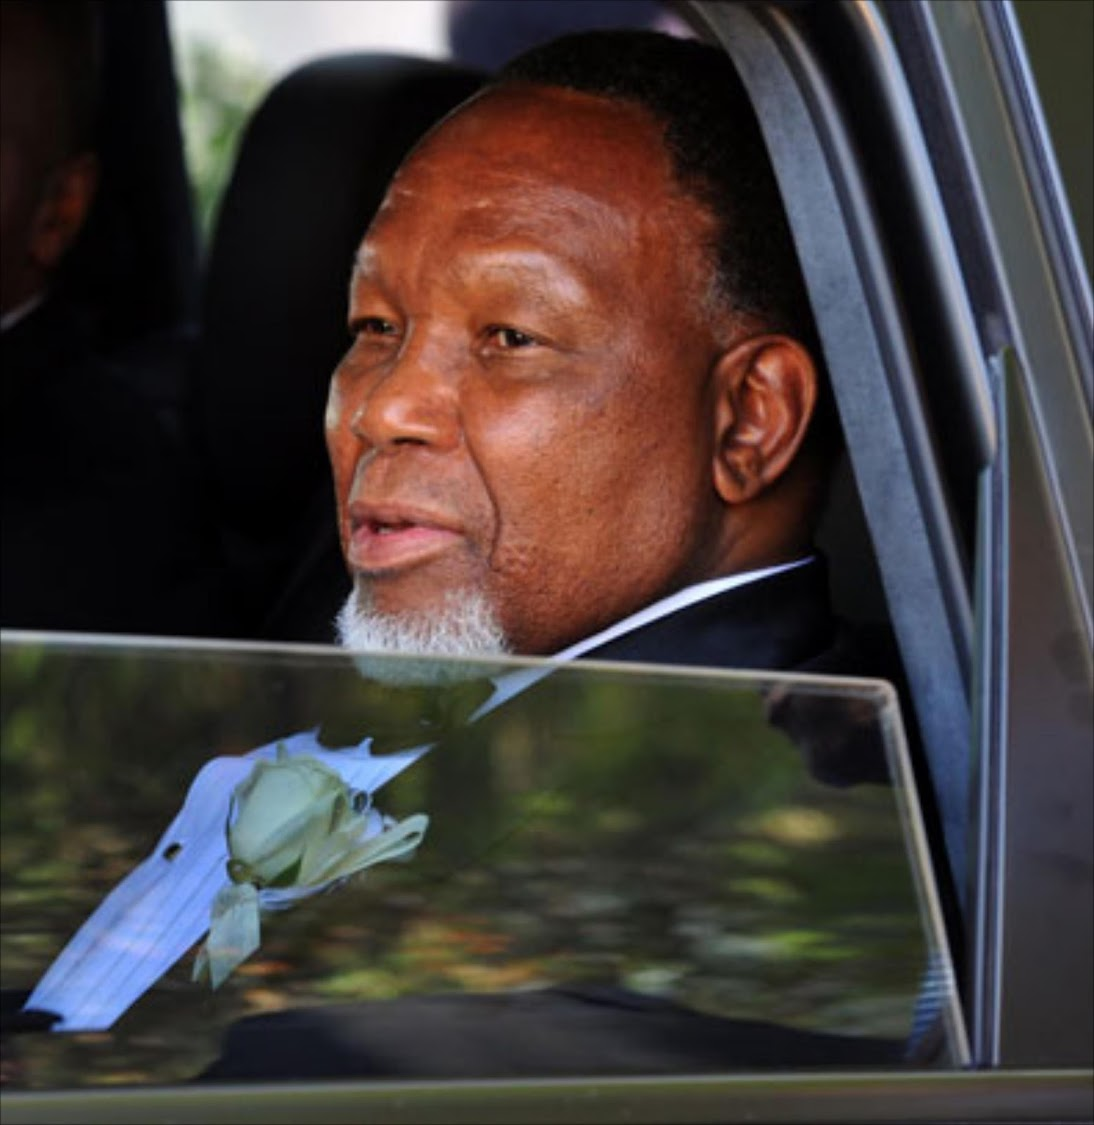 Kgalema Motlanthe has been appointed to head a task team looking in to the post election violence in Zimbabwe.